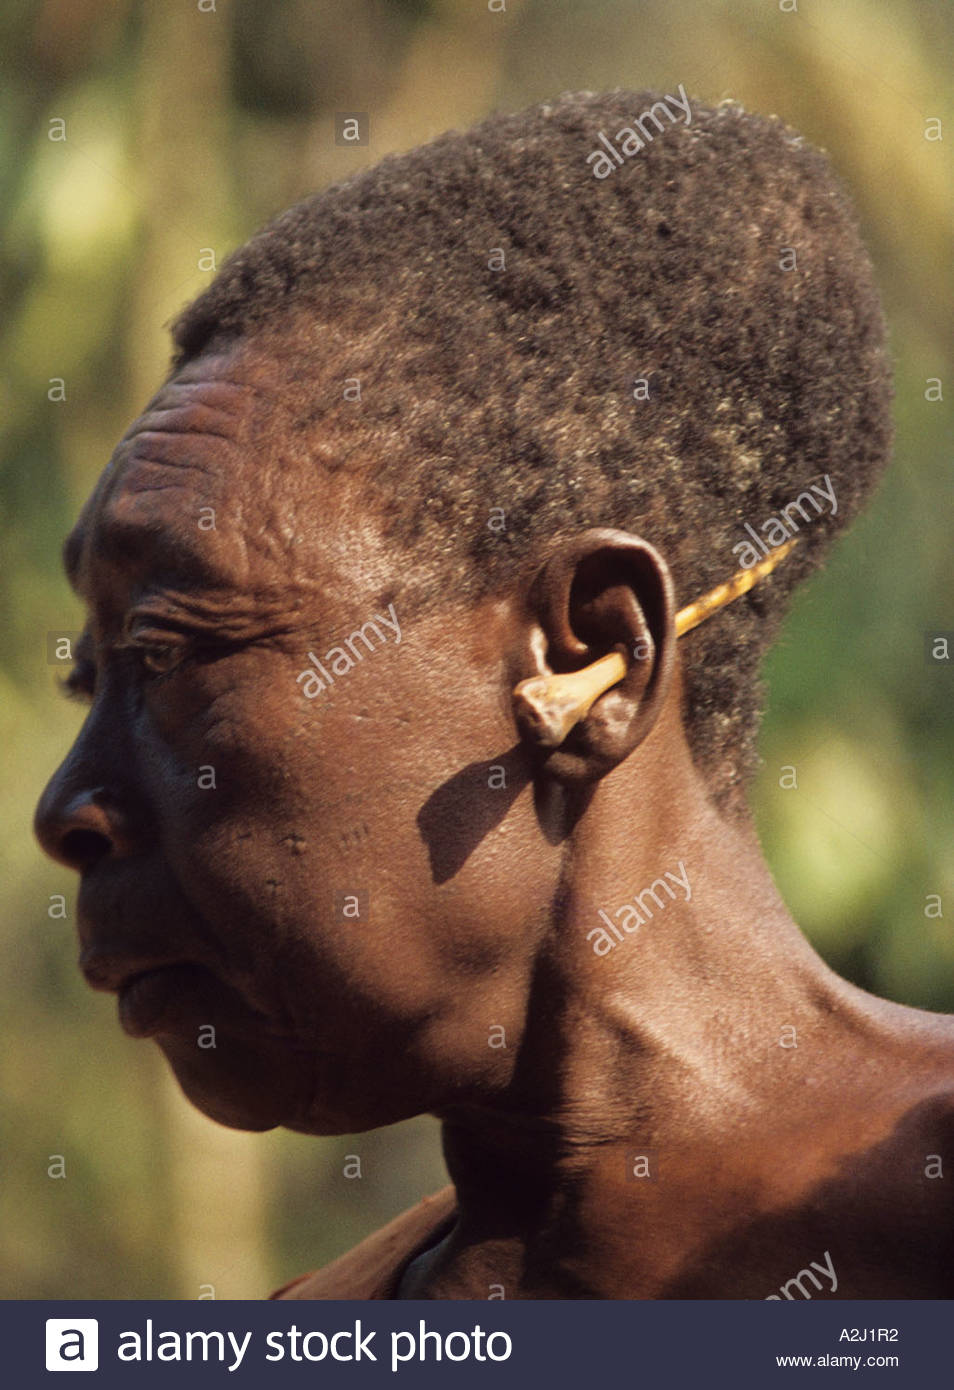 Upper Class Mangbetu woman with elongated skull wears a monkey bone through her ear - Stock Image